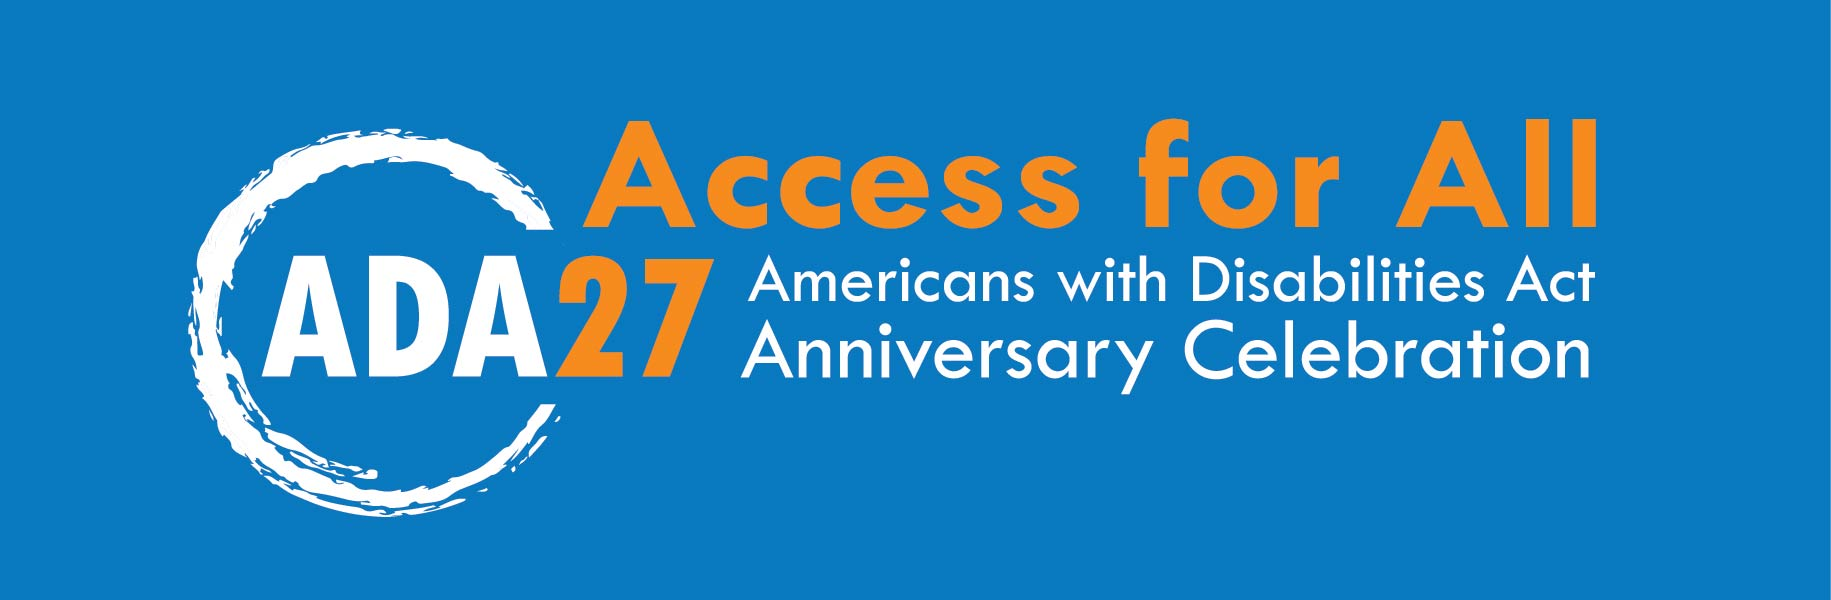 ADA27 / Access for All